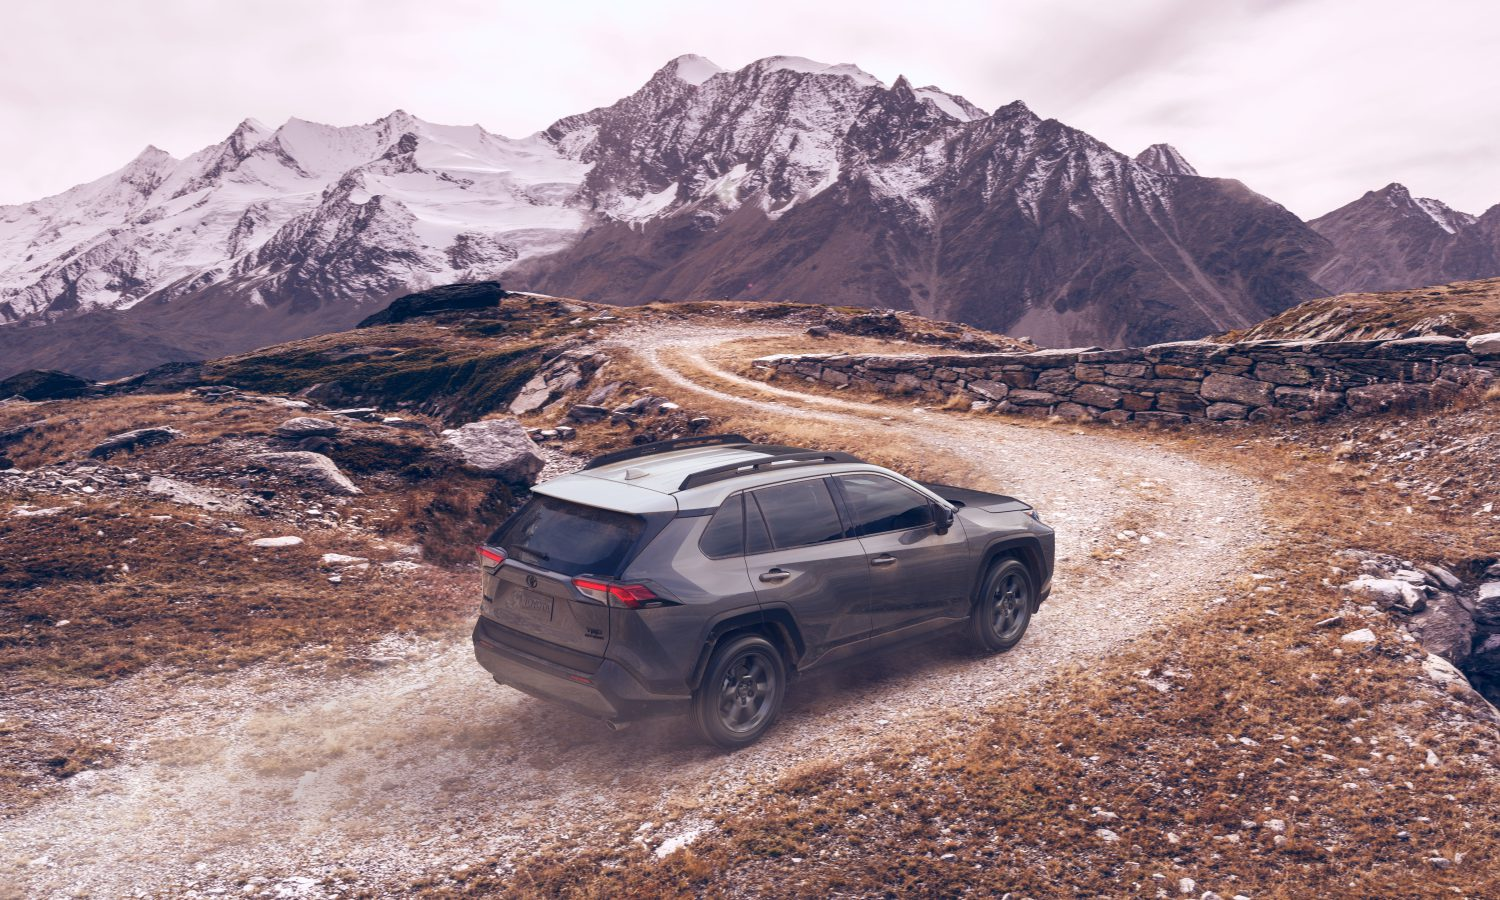 Toyota RAV4 Drivers Earn Trail Cred – Thanks to New TRD Off-Road Treatment